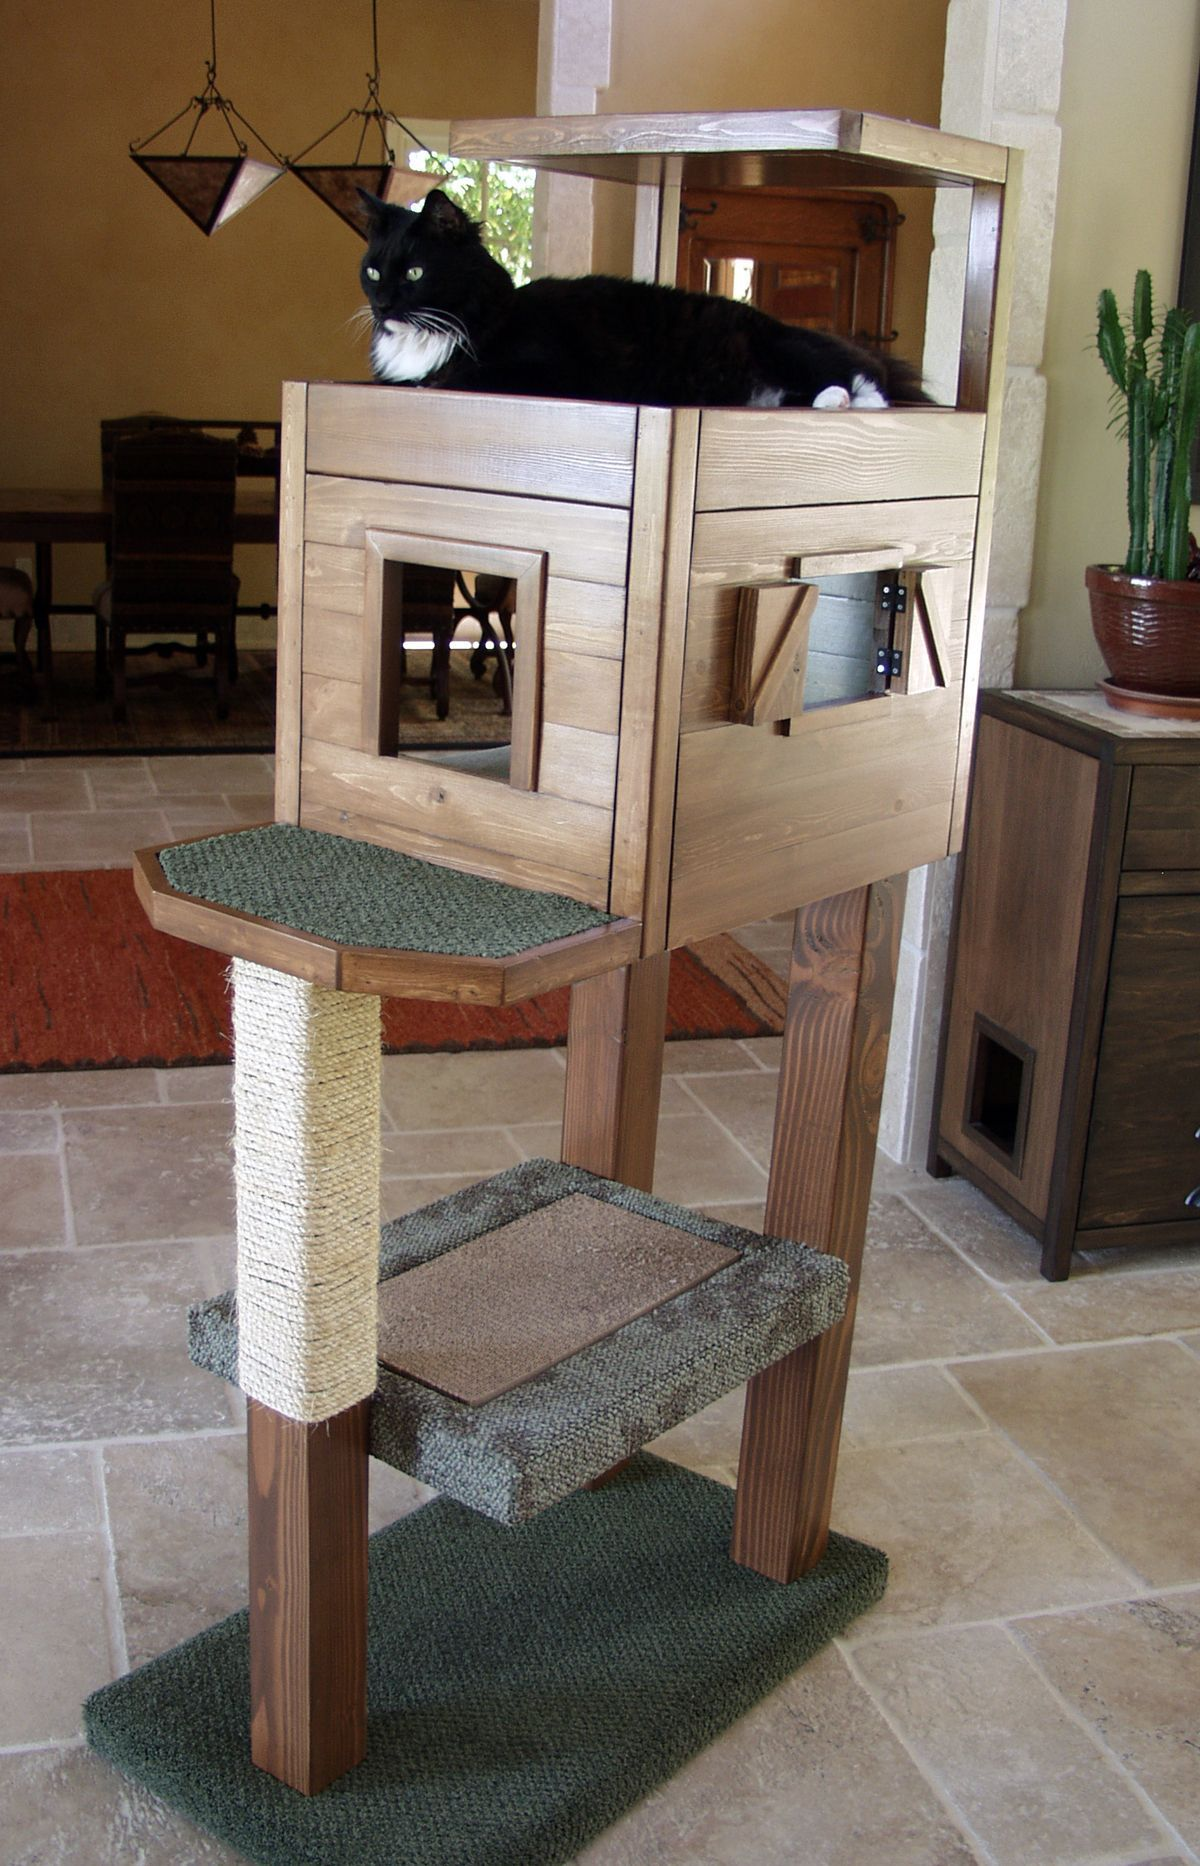 Cat treecondo do it yourself home projects from ana white cat treecondo do it yourself home projects from ana white catsdiyfurniture solutioingenieria Gallery